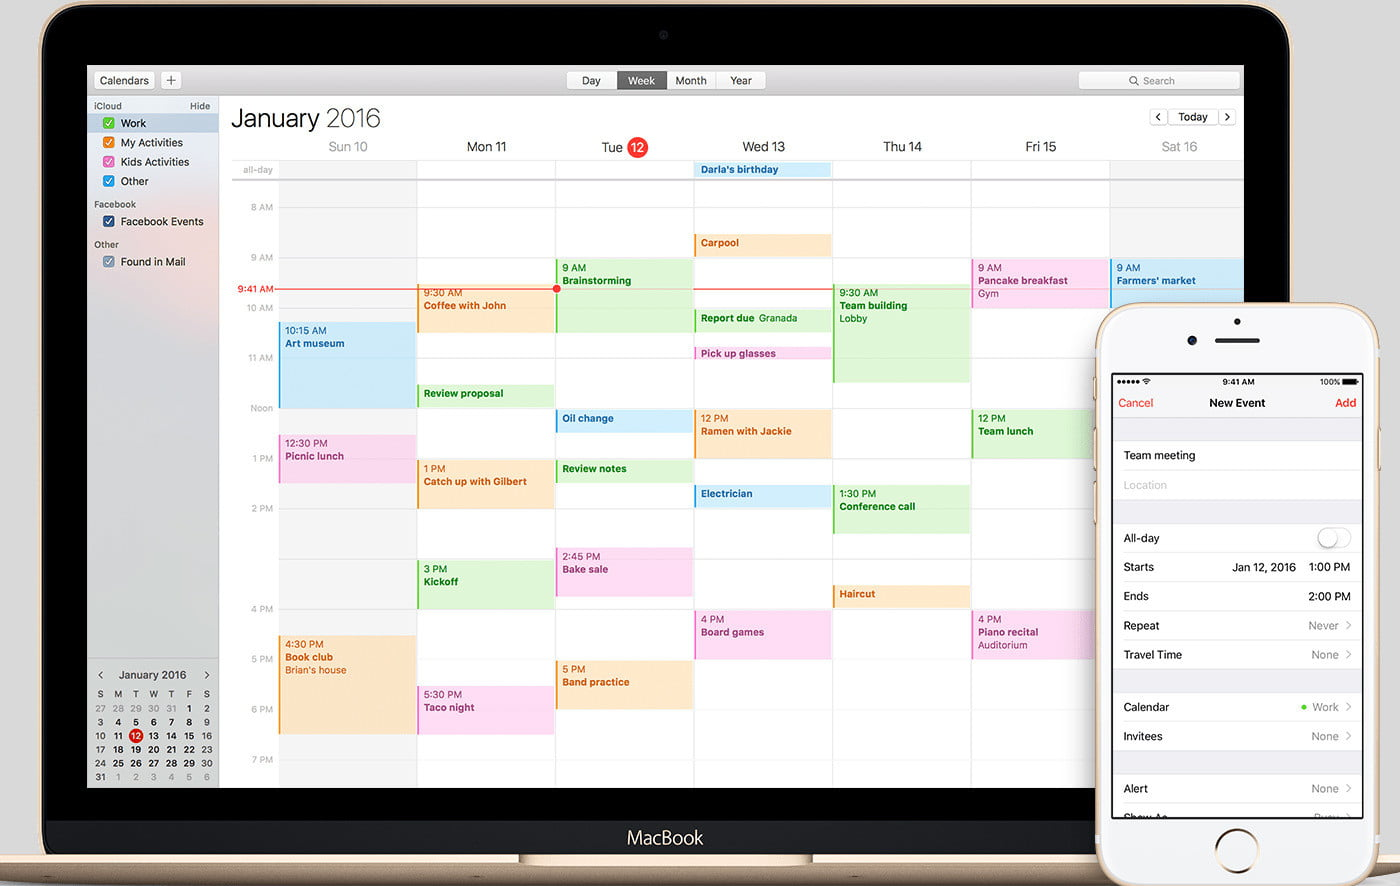 Apple says it's taking steps to stop all that annoying Calendar invite spam